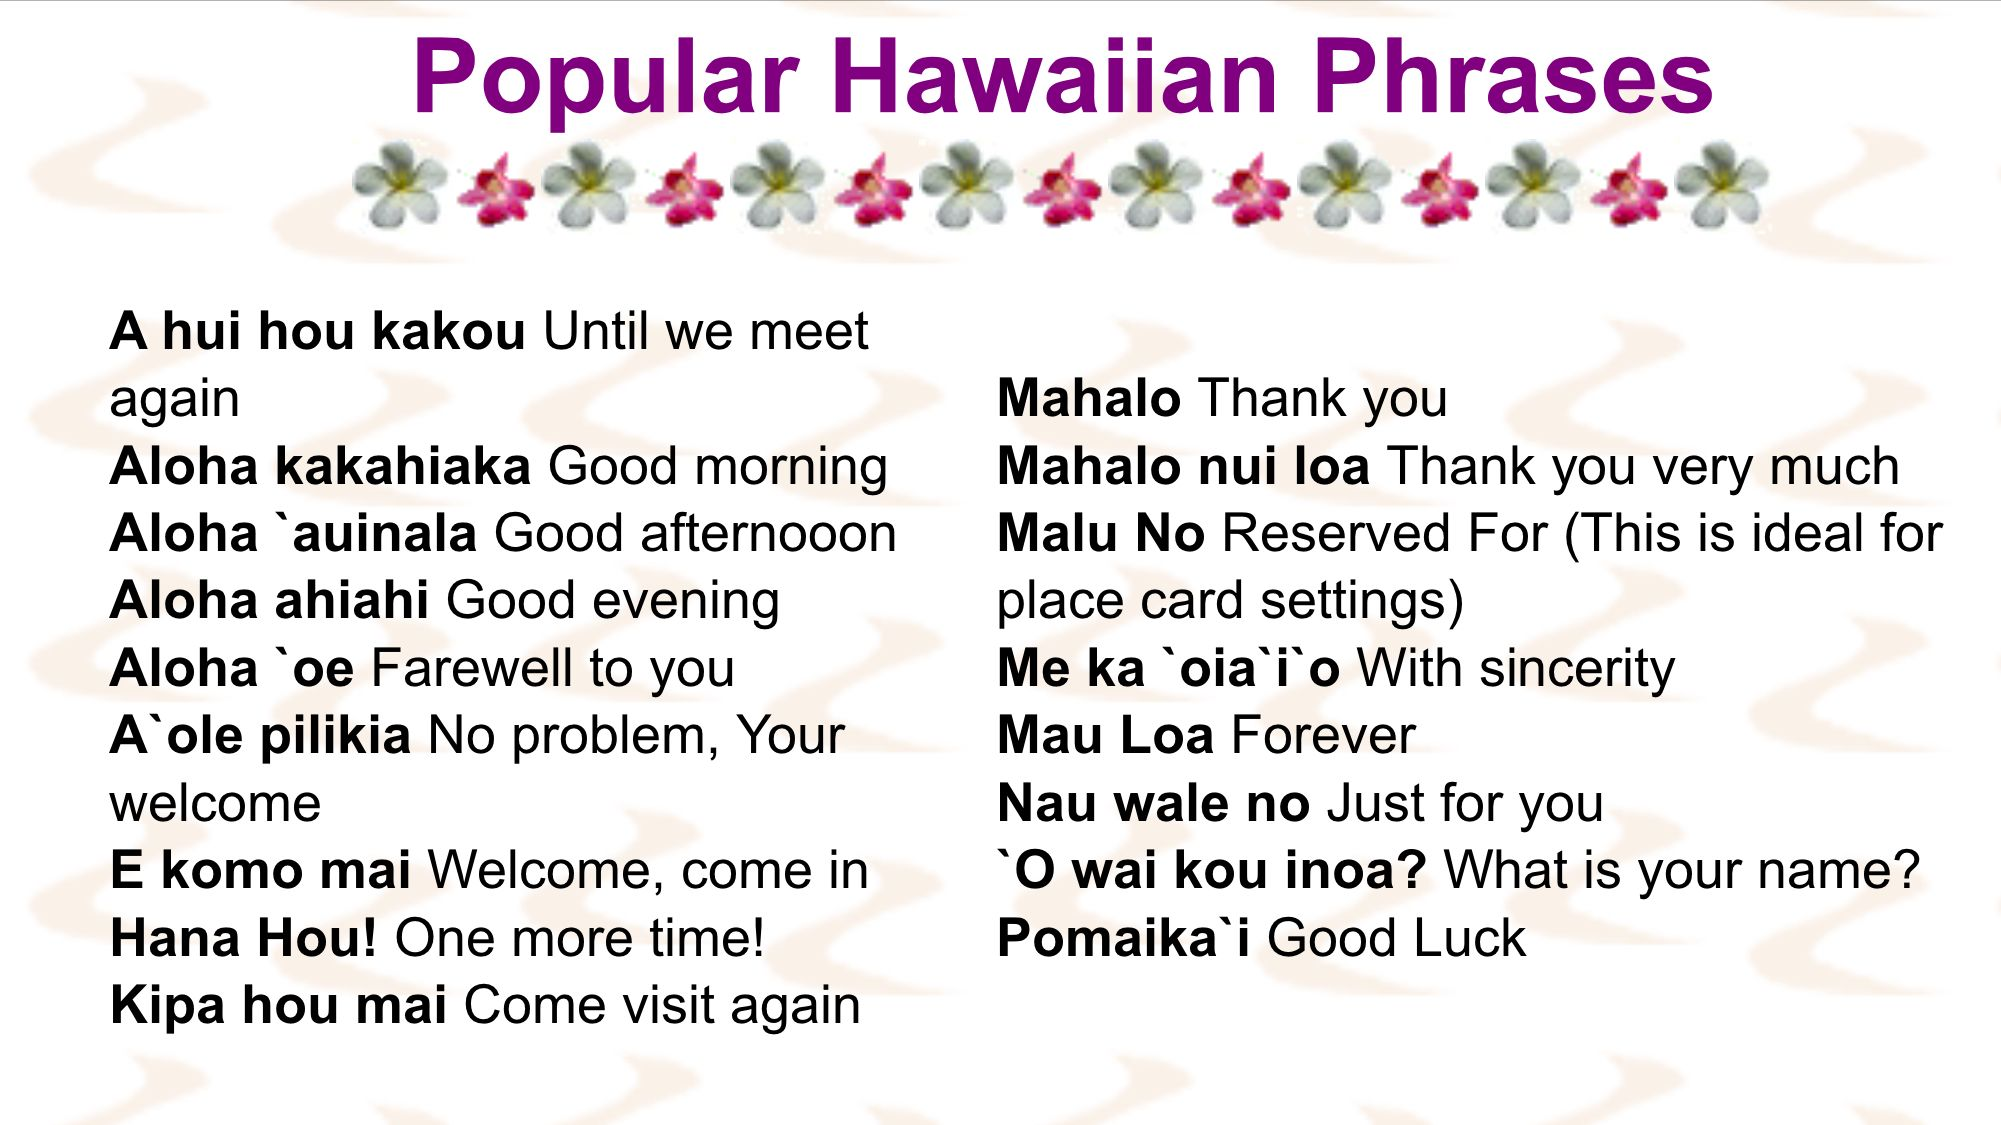 Maui hookups meaning